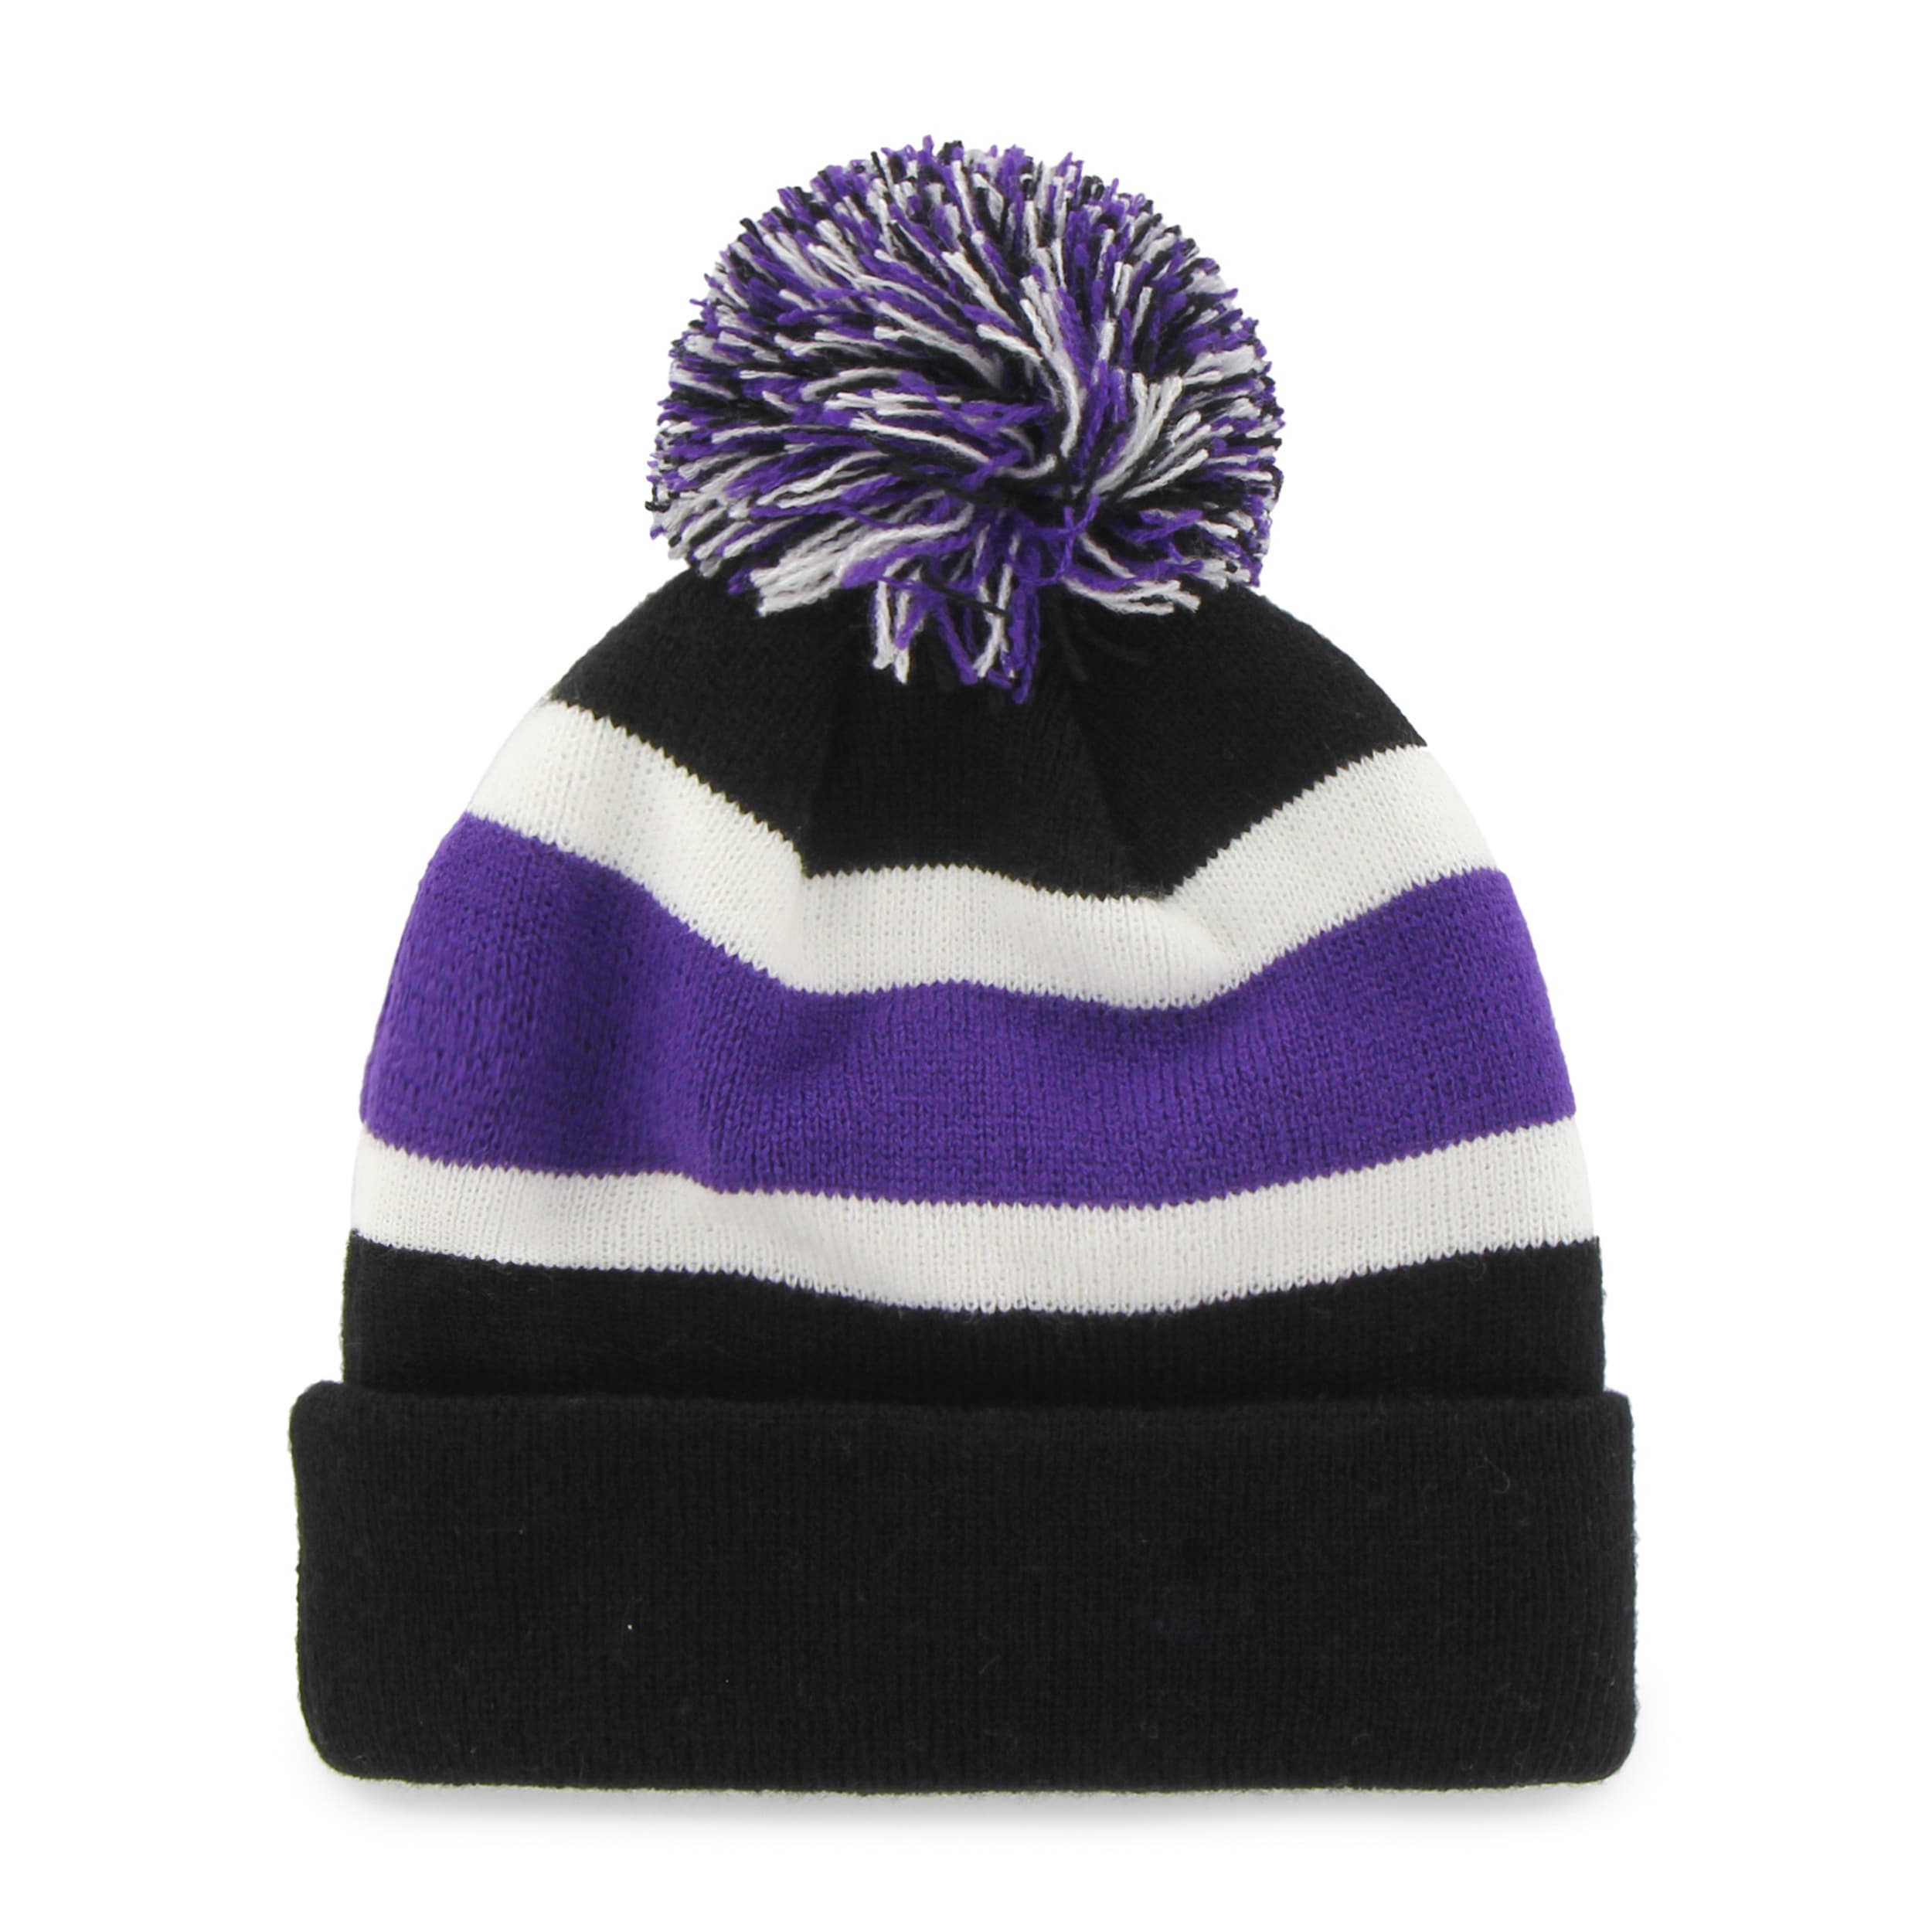 ... cuffed pom knit hat 09325 69854  purchase shop fan favorites baltimore  ravens nfl knit beanie hat baltimore ravens free shipping on orders b166e86d809c